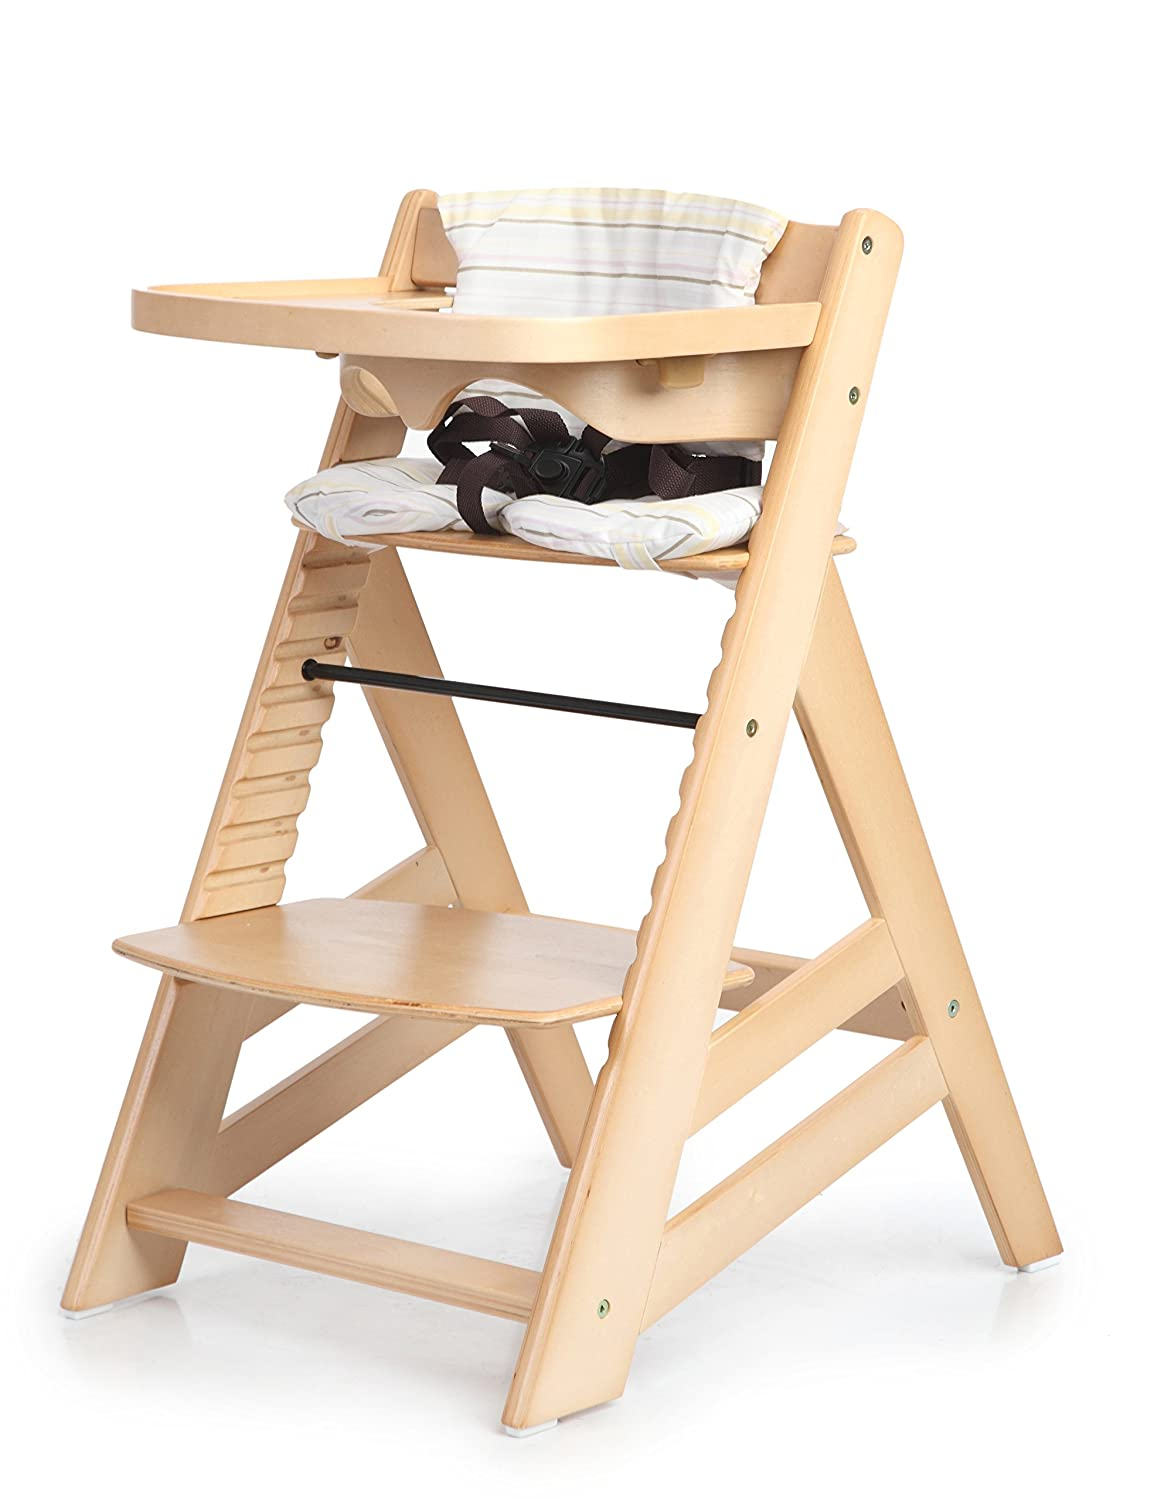 Amazoncom Sepnine Wooden Baby Highchairs with adjustable height